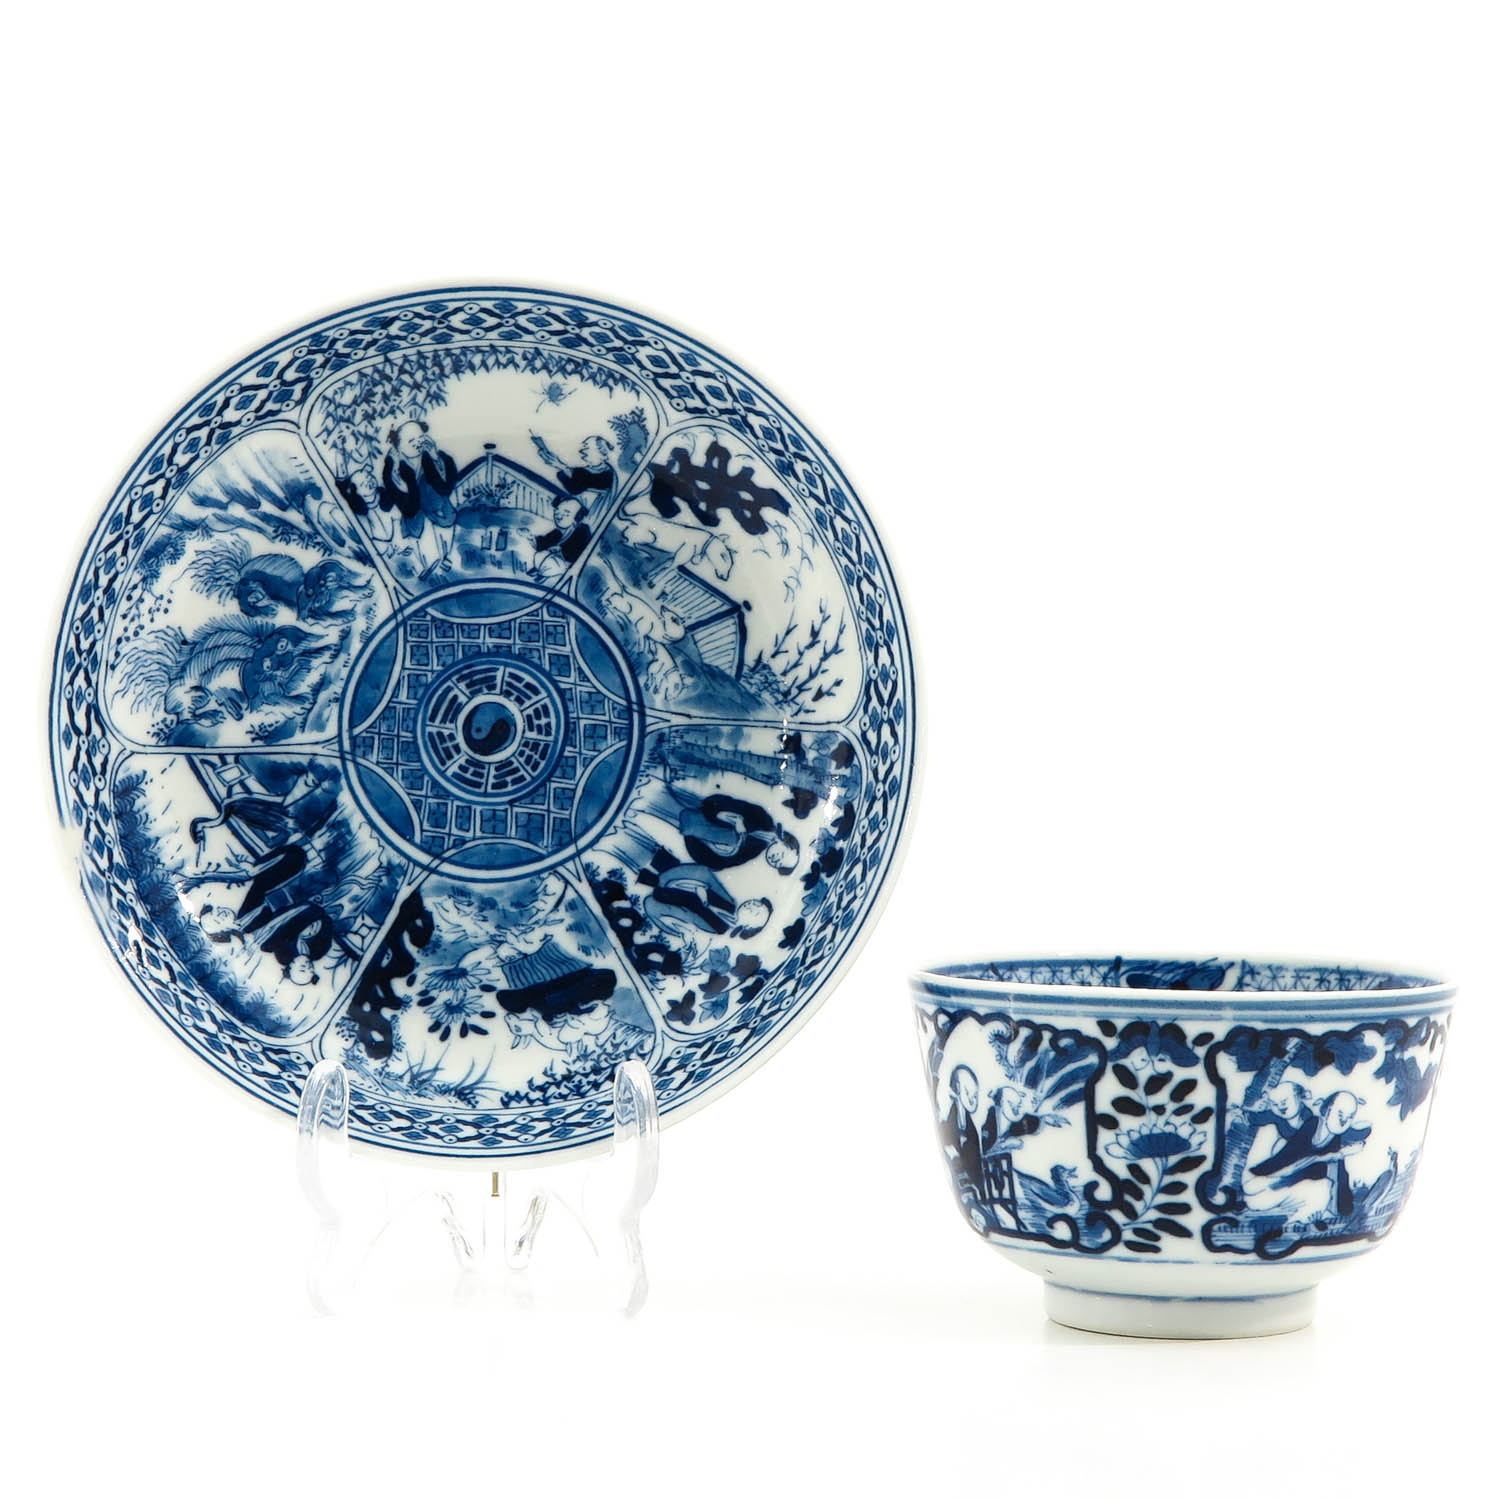 A Blue and White Cup and Saucer - Image 4 of 9